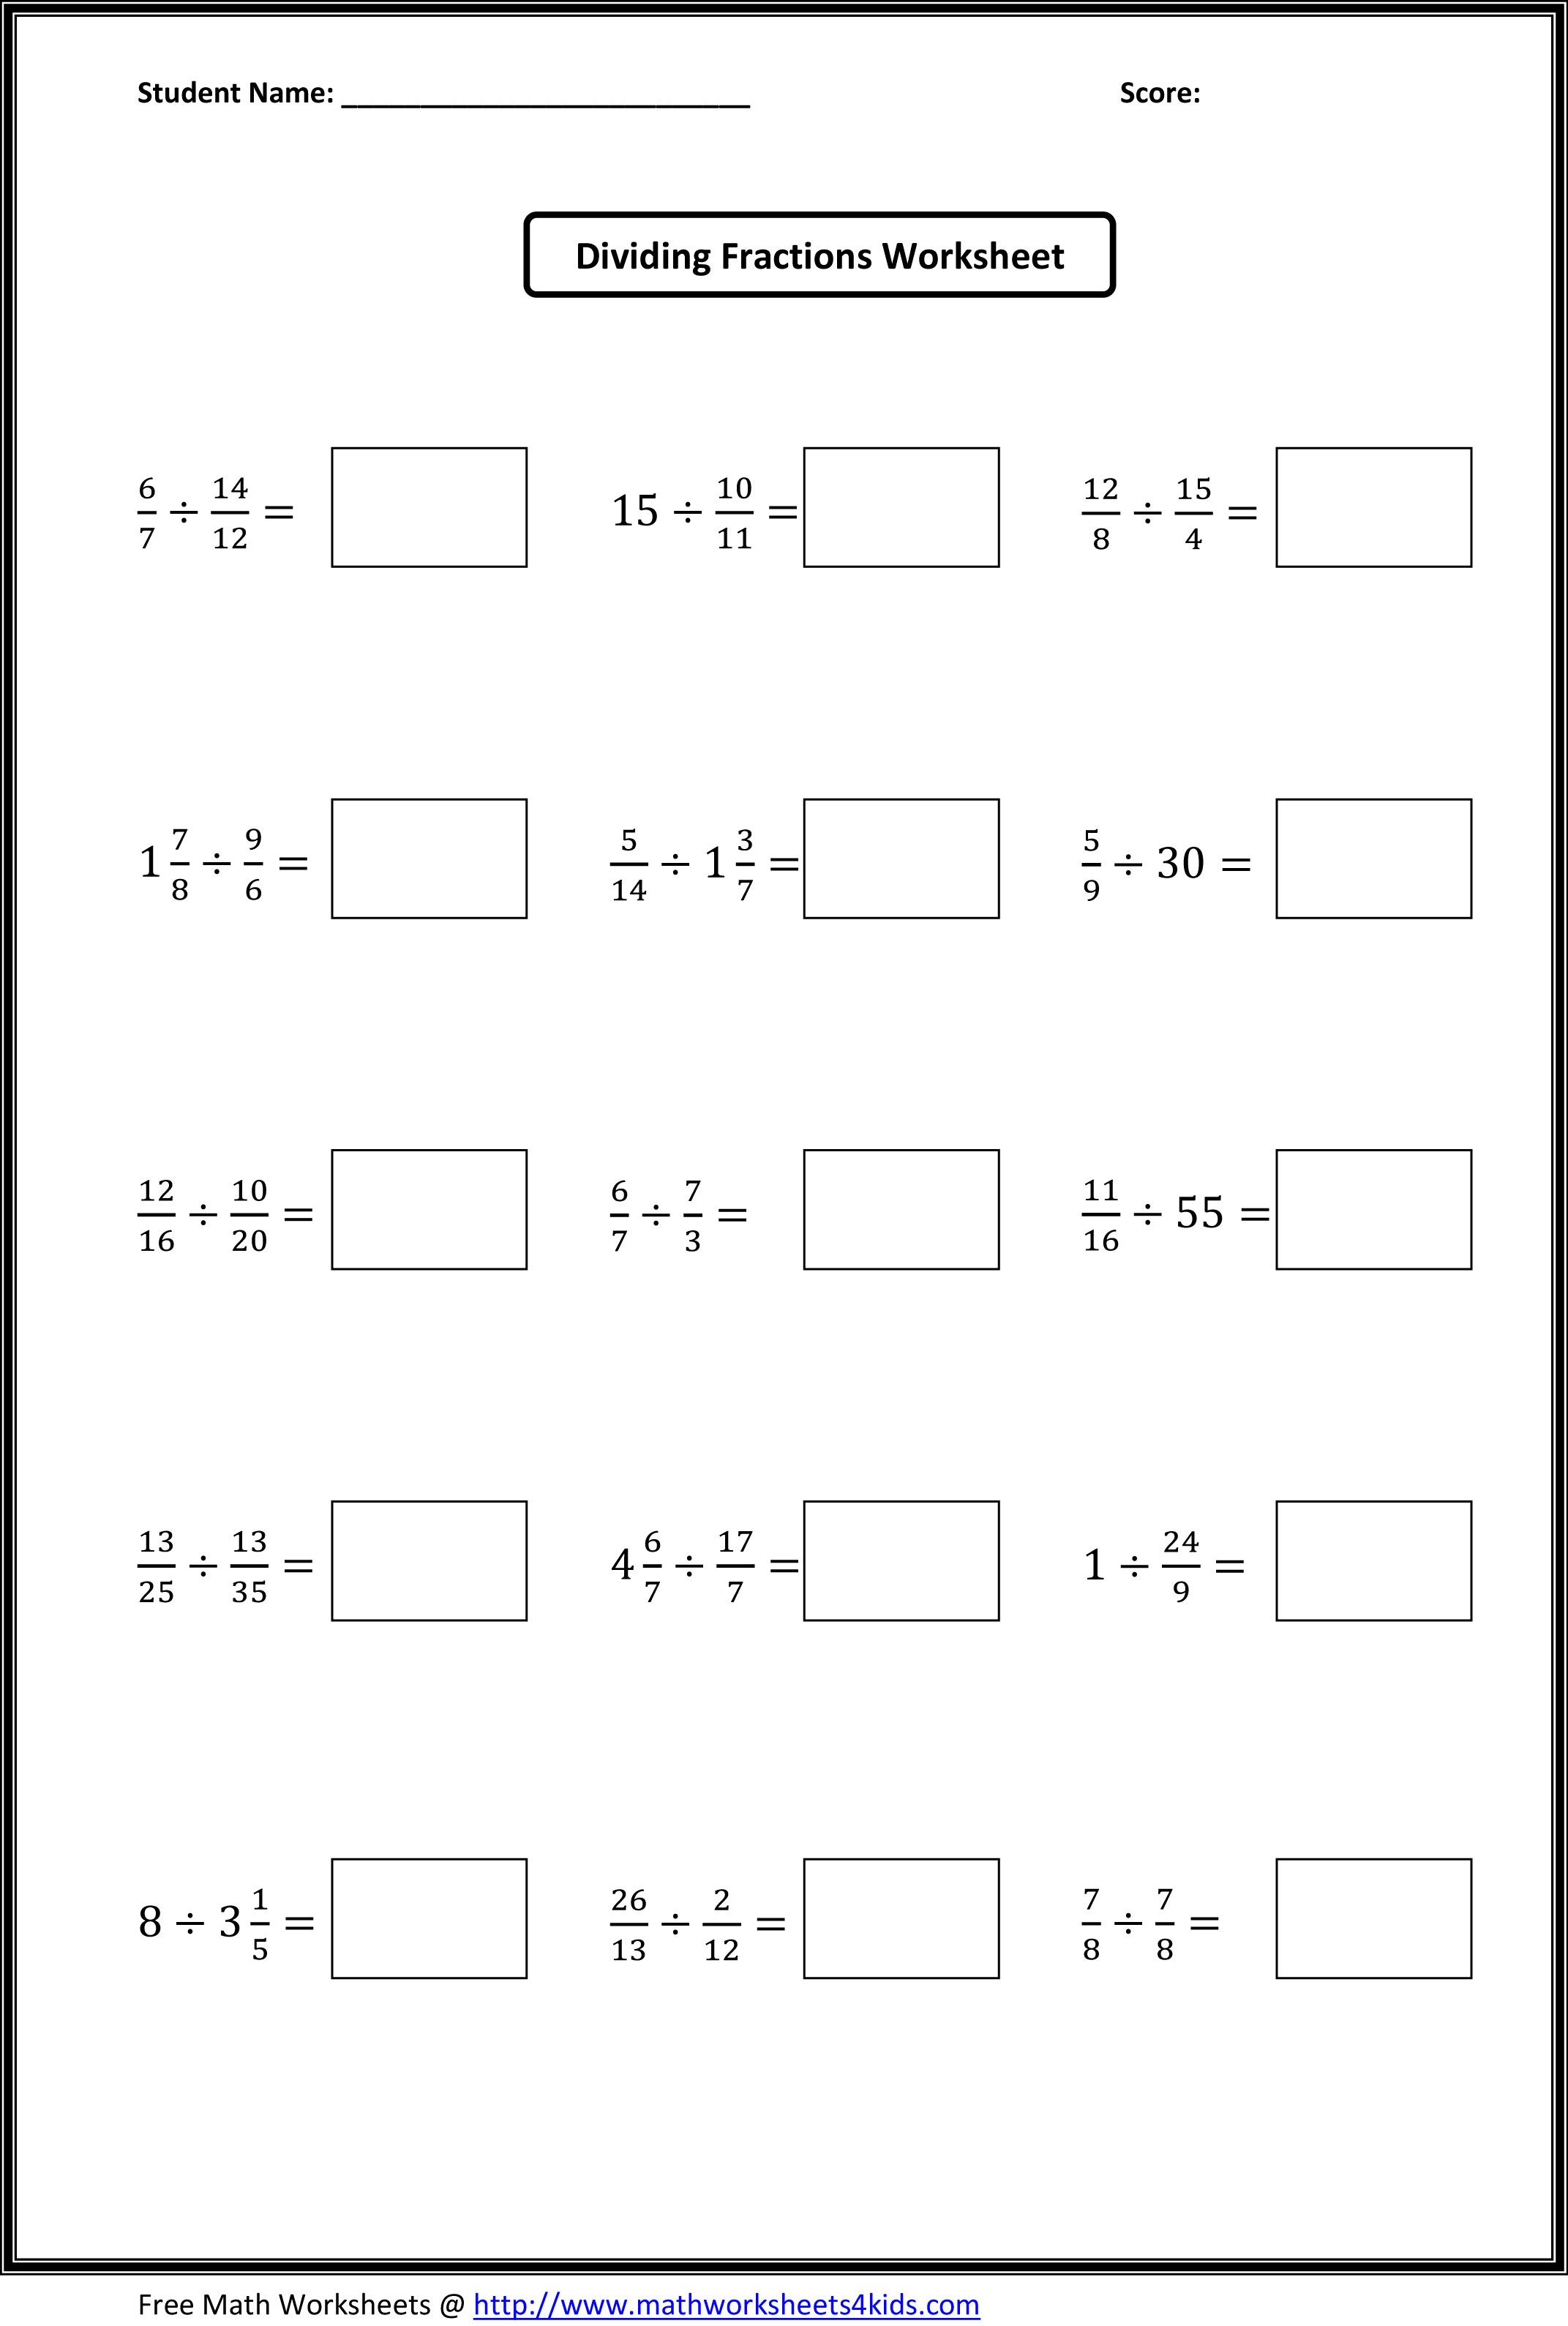 worksheet Adding Subtracting Multiplying And Dividing Fractions Worksheets dividing fractions worksheets whats new pinterest multiplying